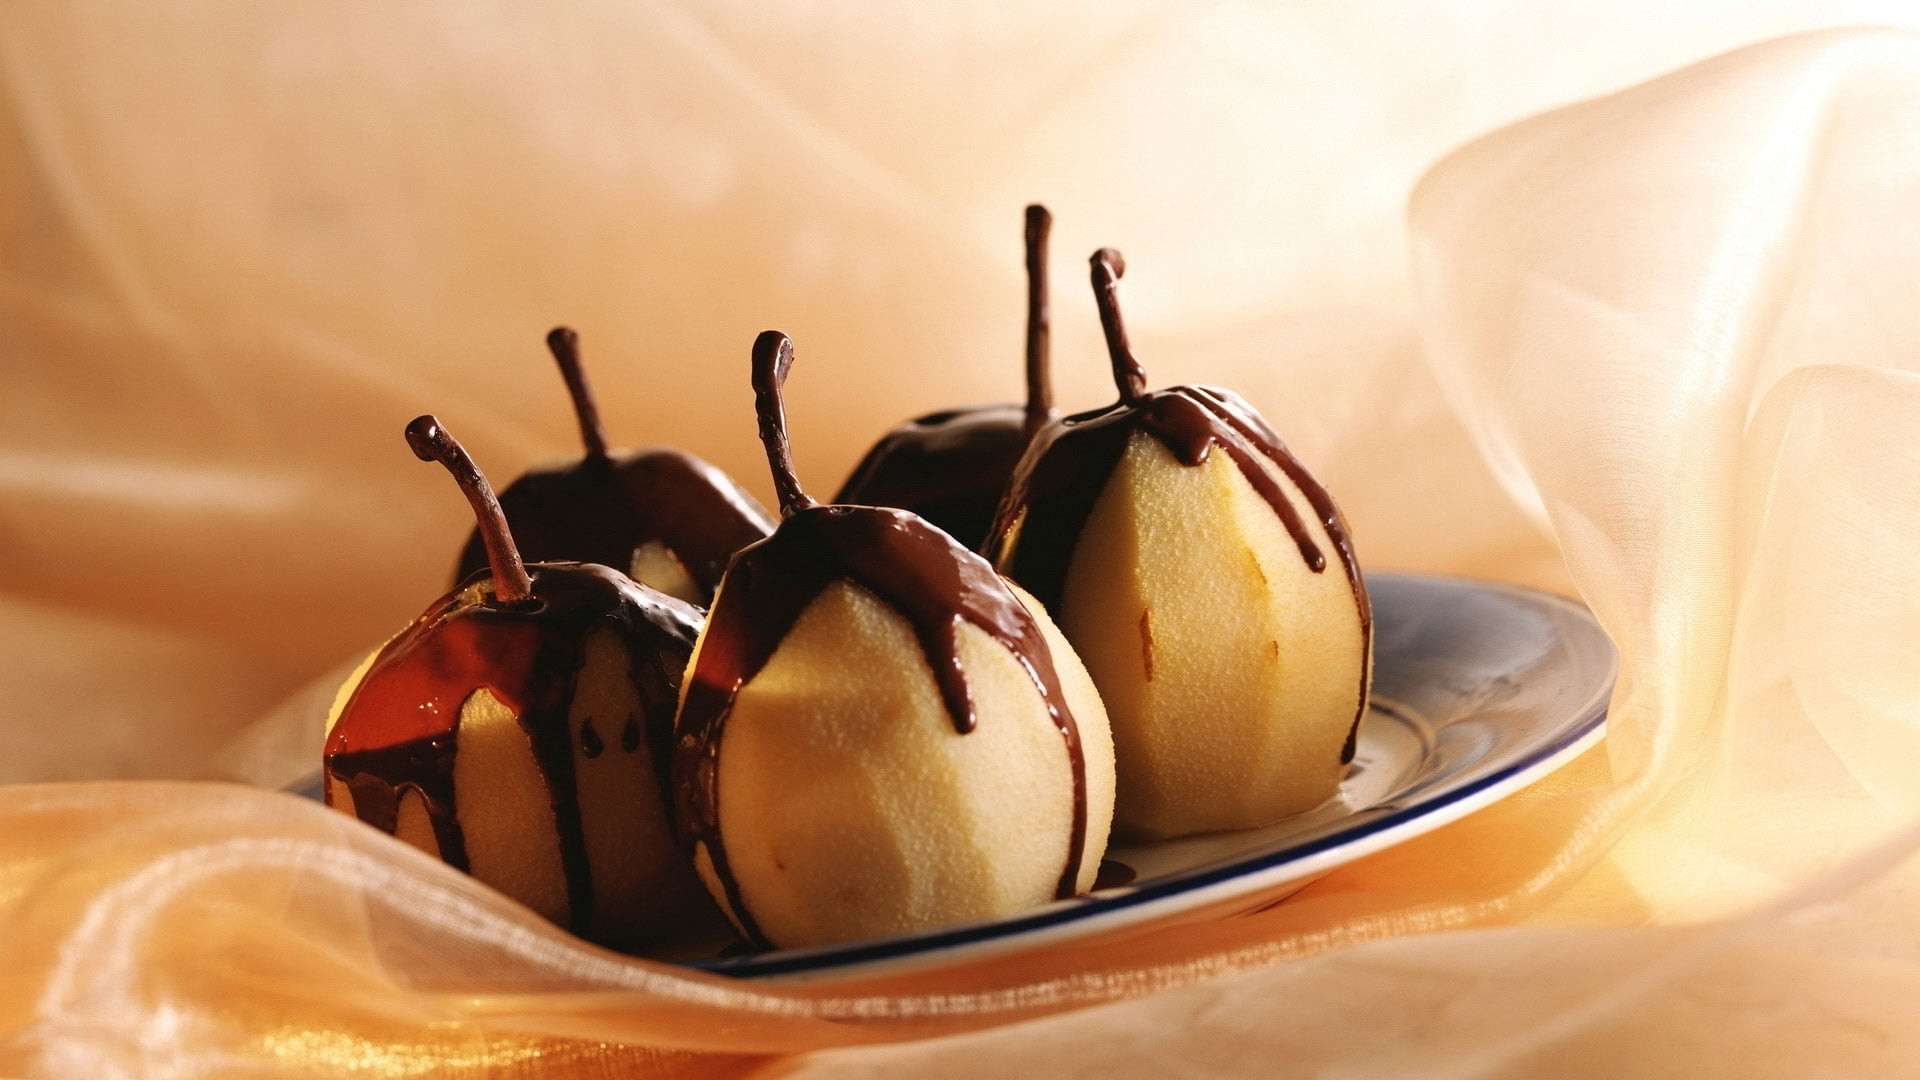 Res: 1920x1080, chocolate covered pear HD wallpaper